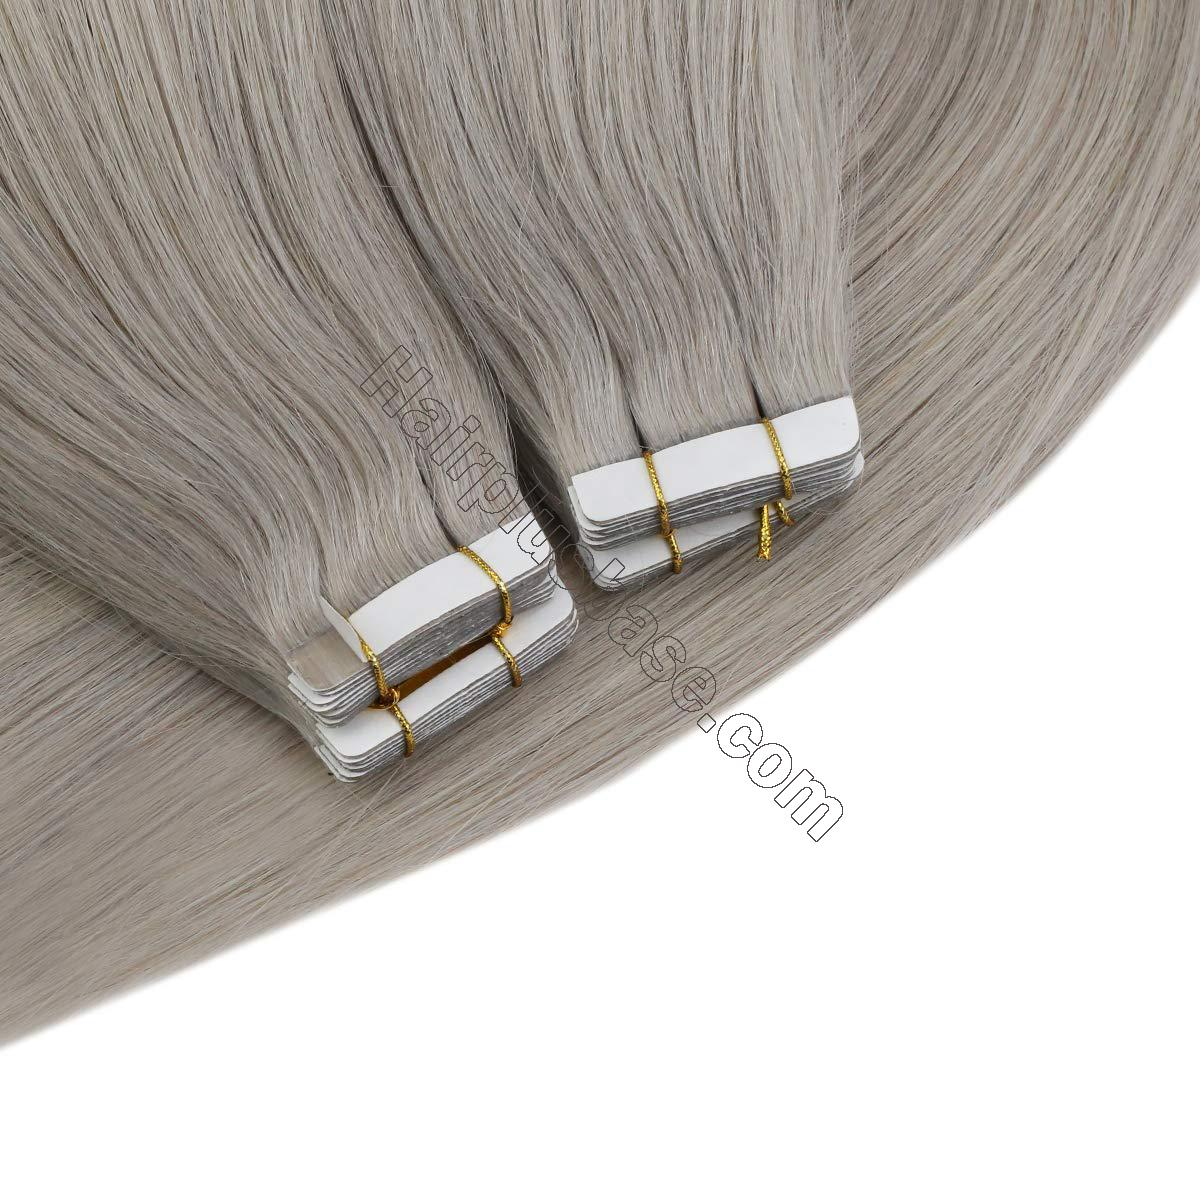 10 - 30 Inch Tape In Remy Human Hair Extensions Grey 20 Pcs 5